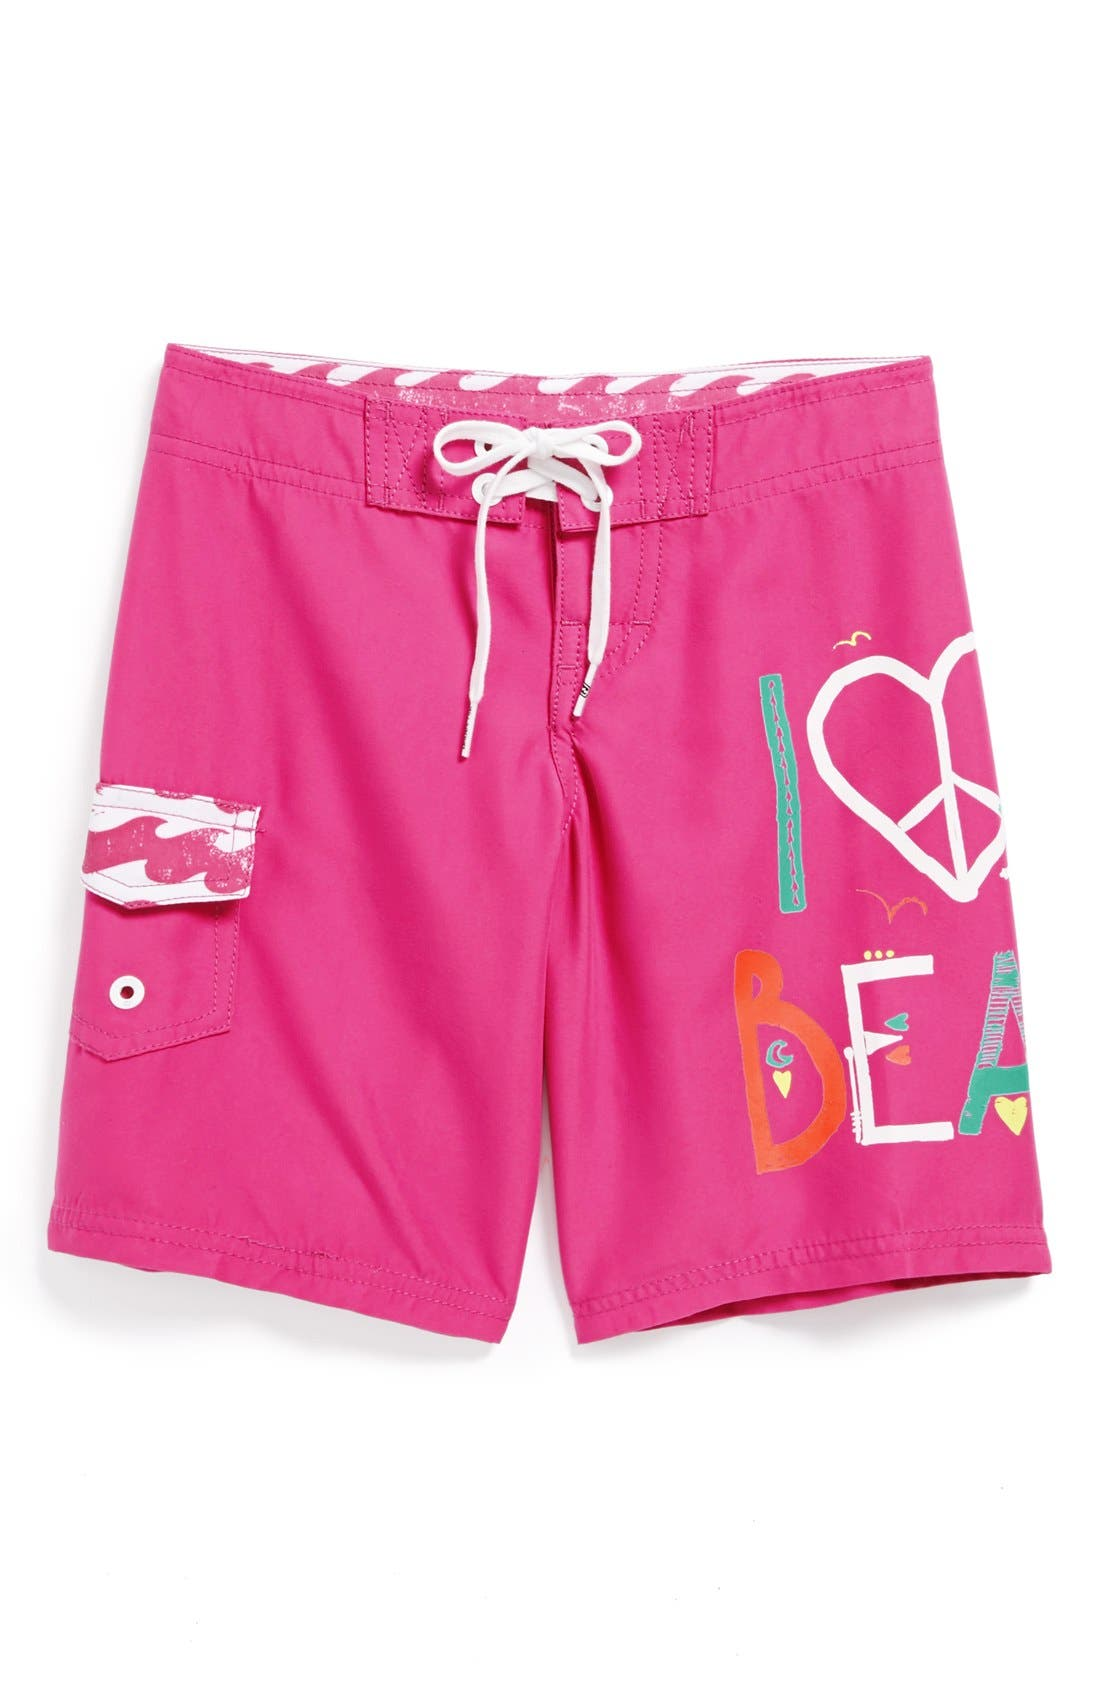 Alternate Image 1 Selected - Billabong 'I Love the Beach' Board Shorts (Big Girls)